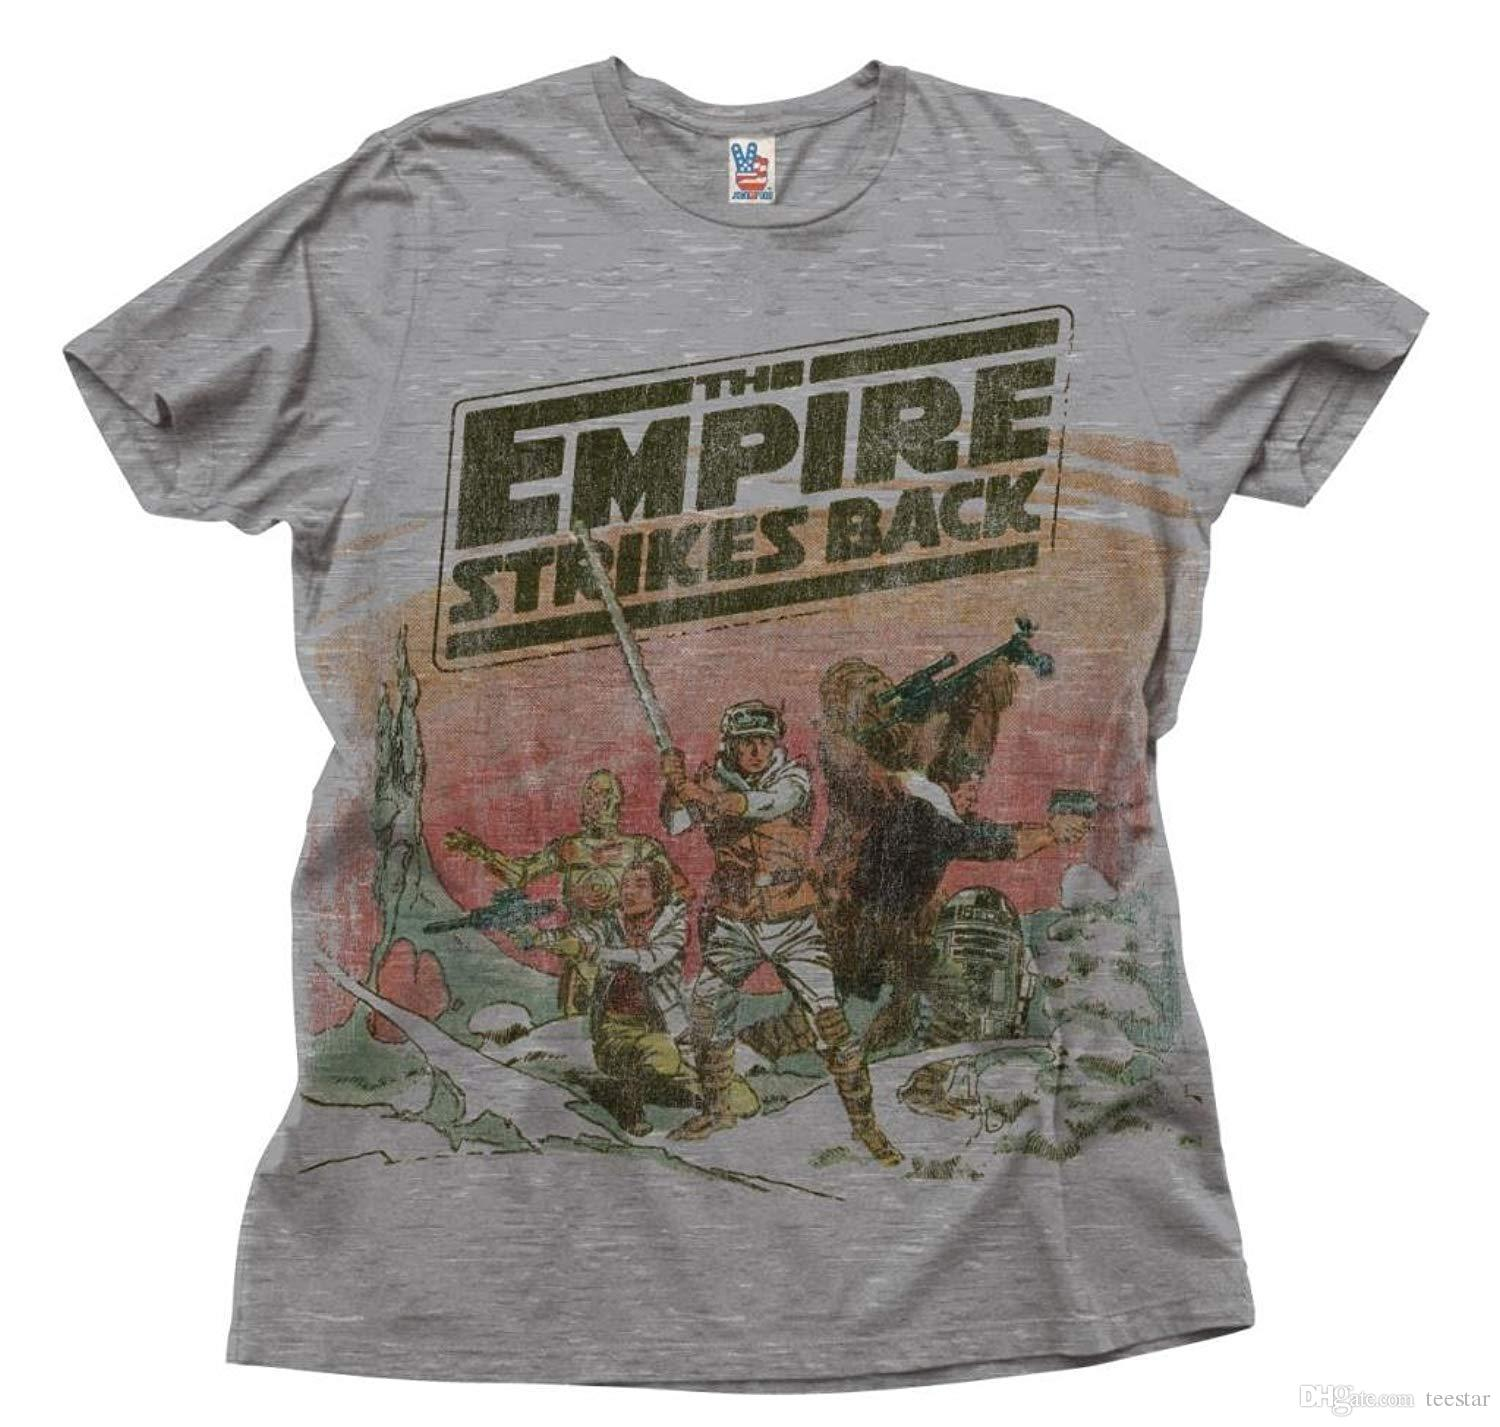 f8a609cc1c1eb8 Factory Outlet The Empire Strikes Back Heather Taupe Adult T Shirt Good  Quality Brand Cotton Shirt Summer Style Cool Shirts Print T Shirt Slogan T  Shirts ...